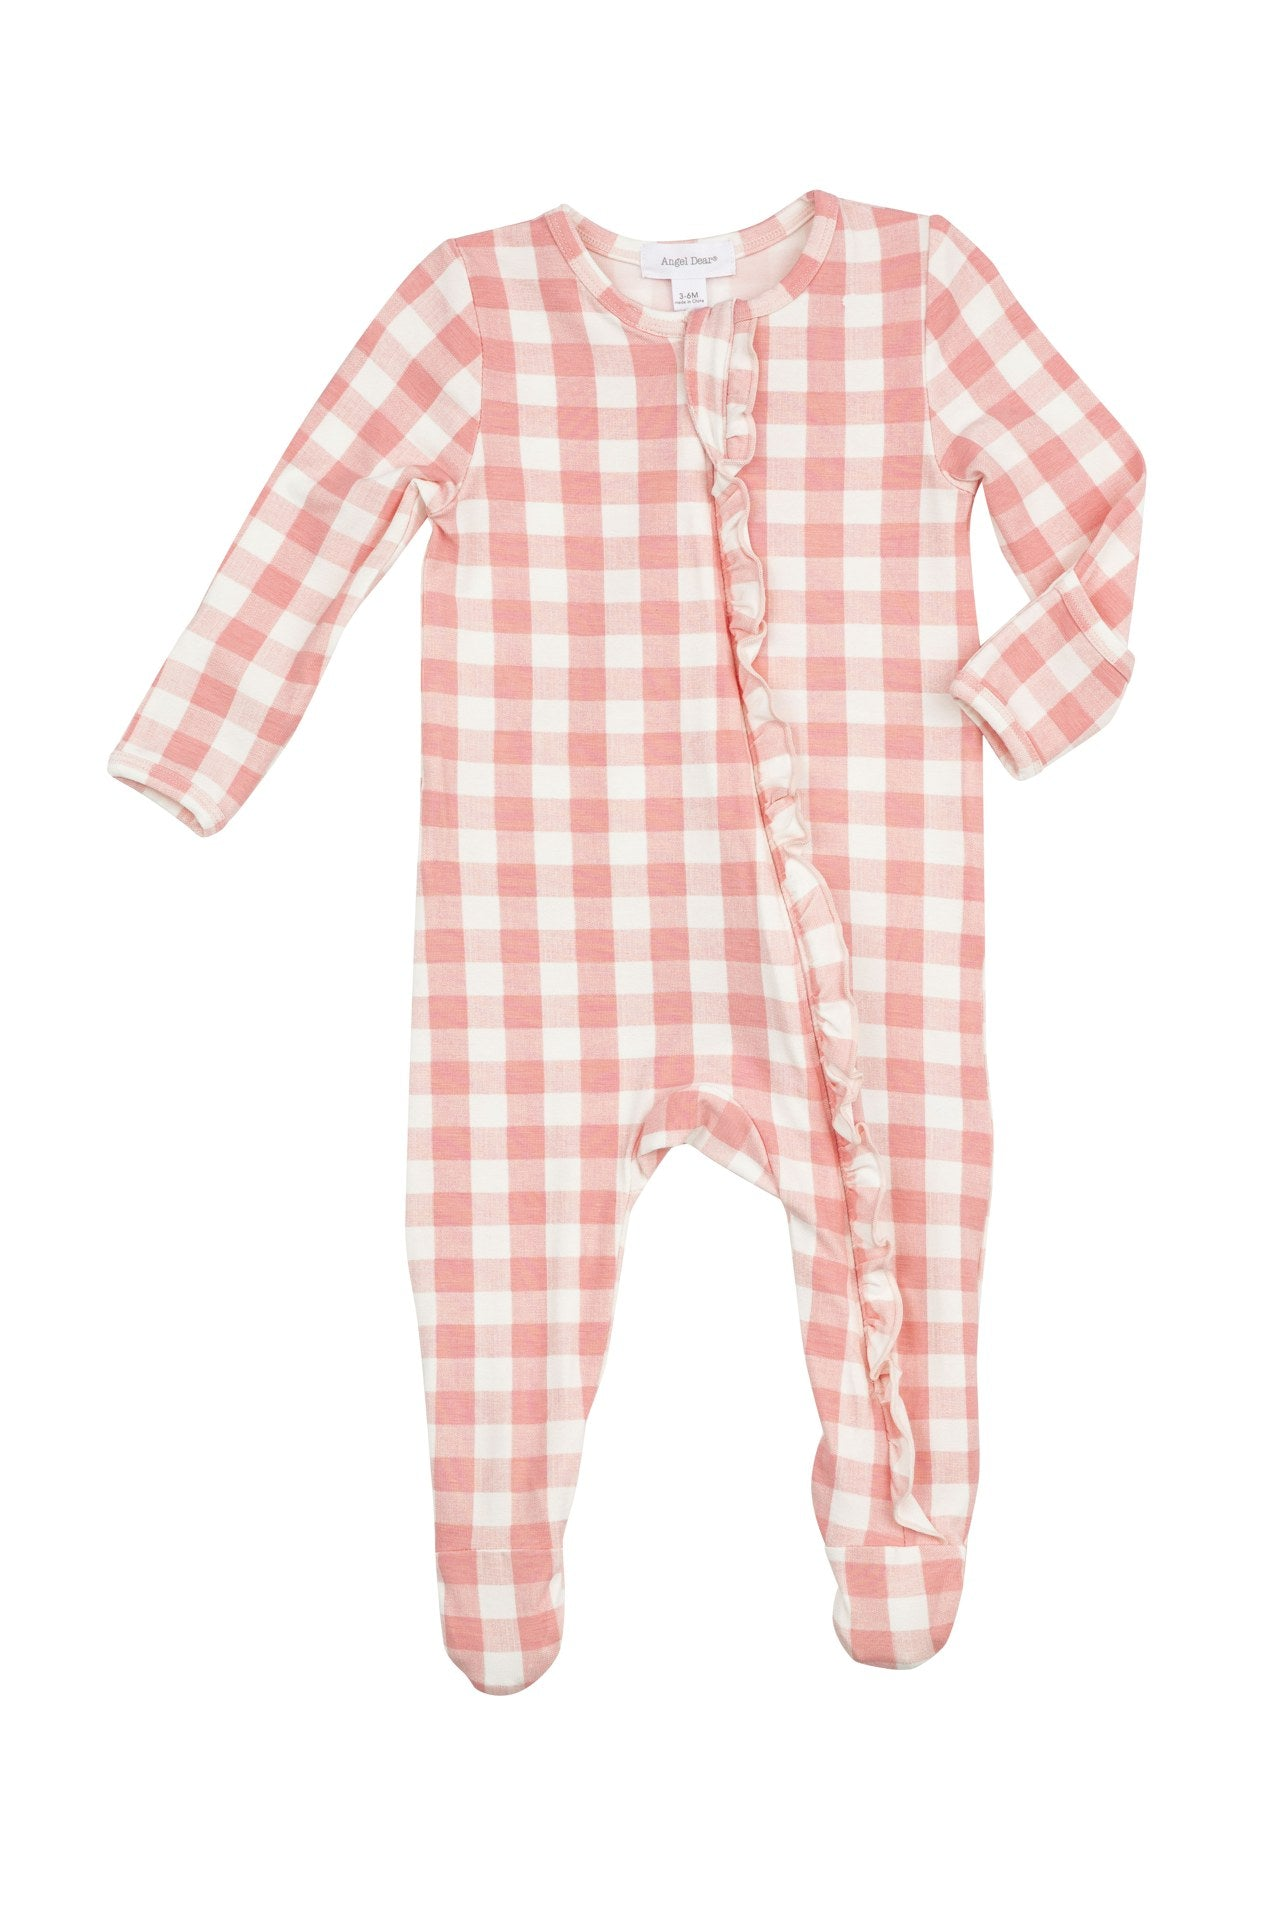 Angel Dear Gingham Pink Zipper Footie